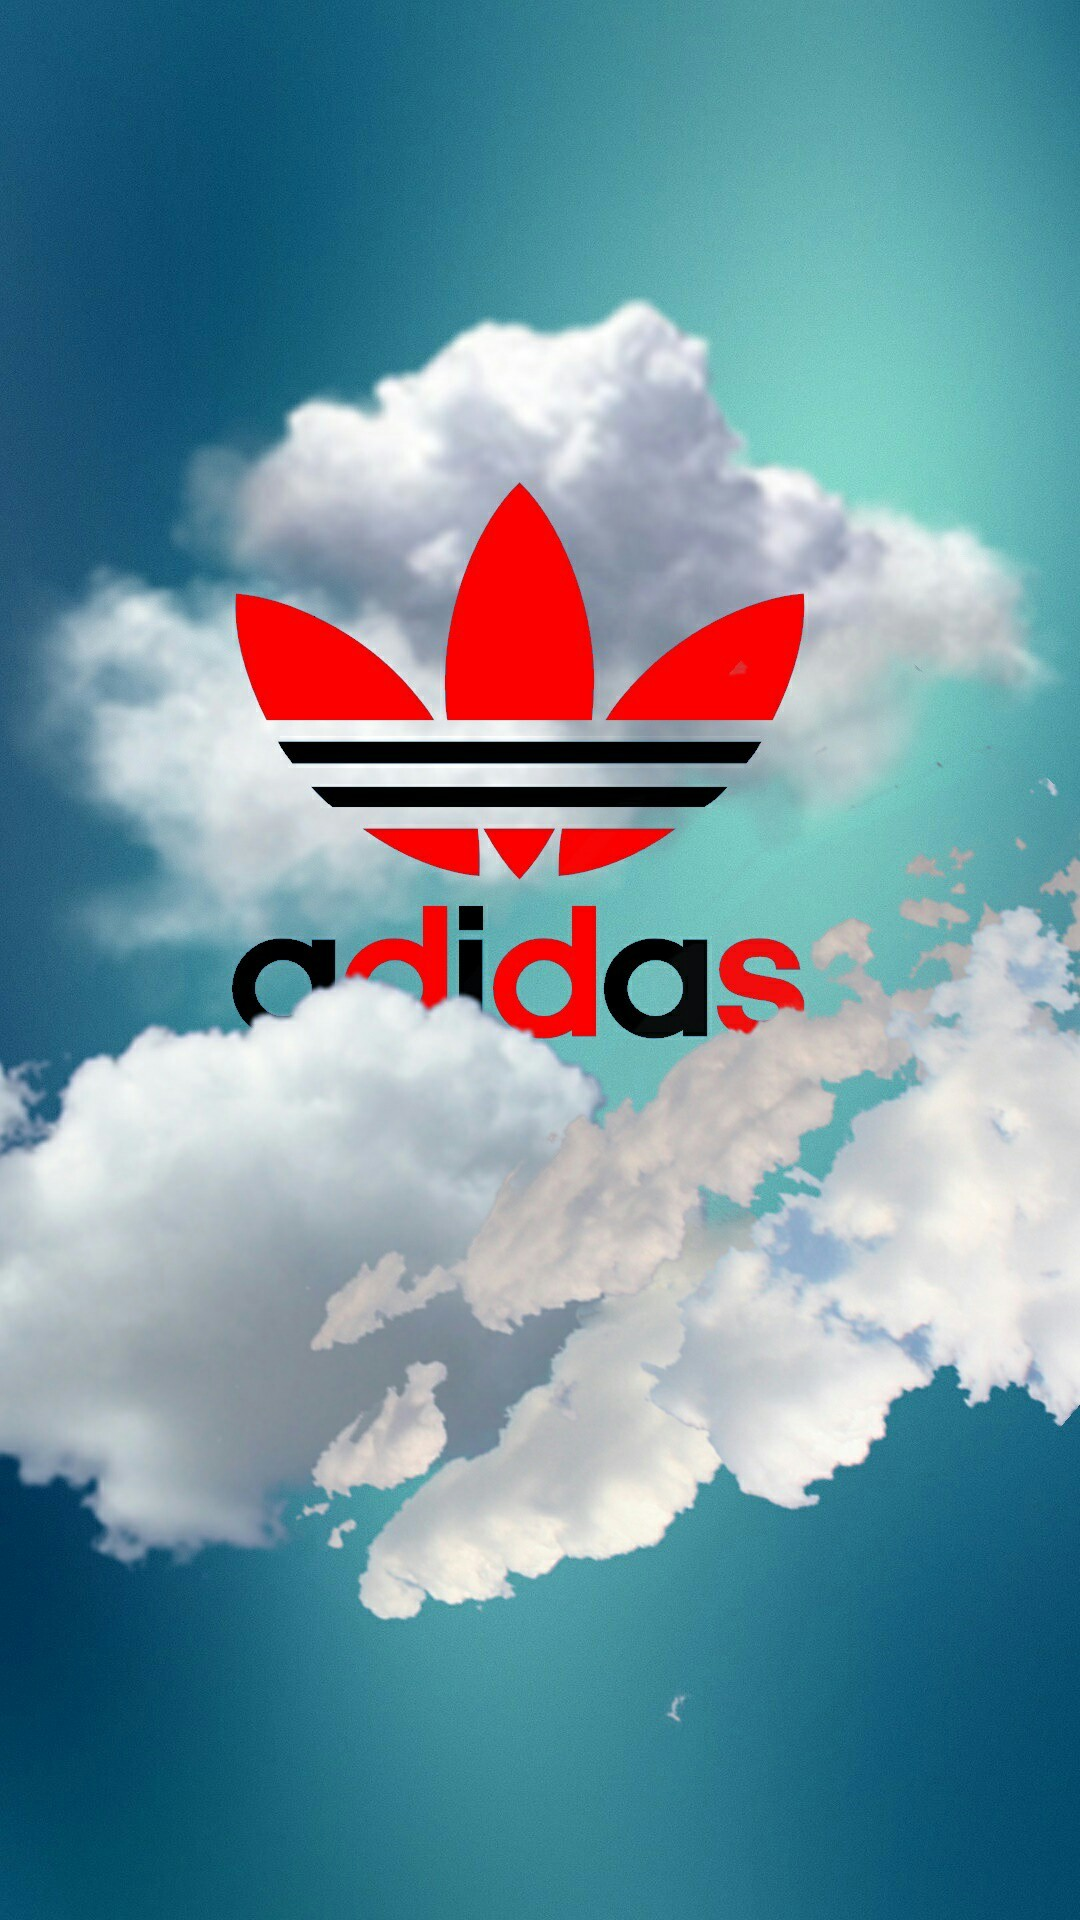 1080x1920 Weed, Chicago Bulls, Adidas Originals, Iphone 6, Nike, Screen